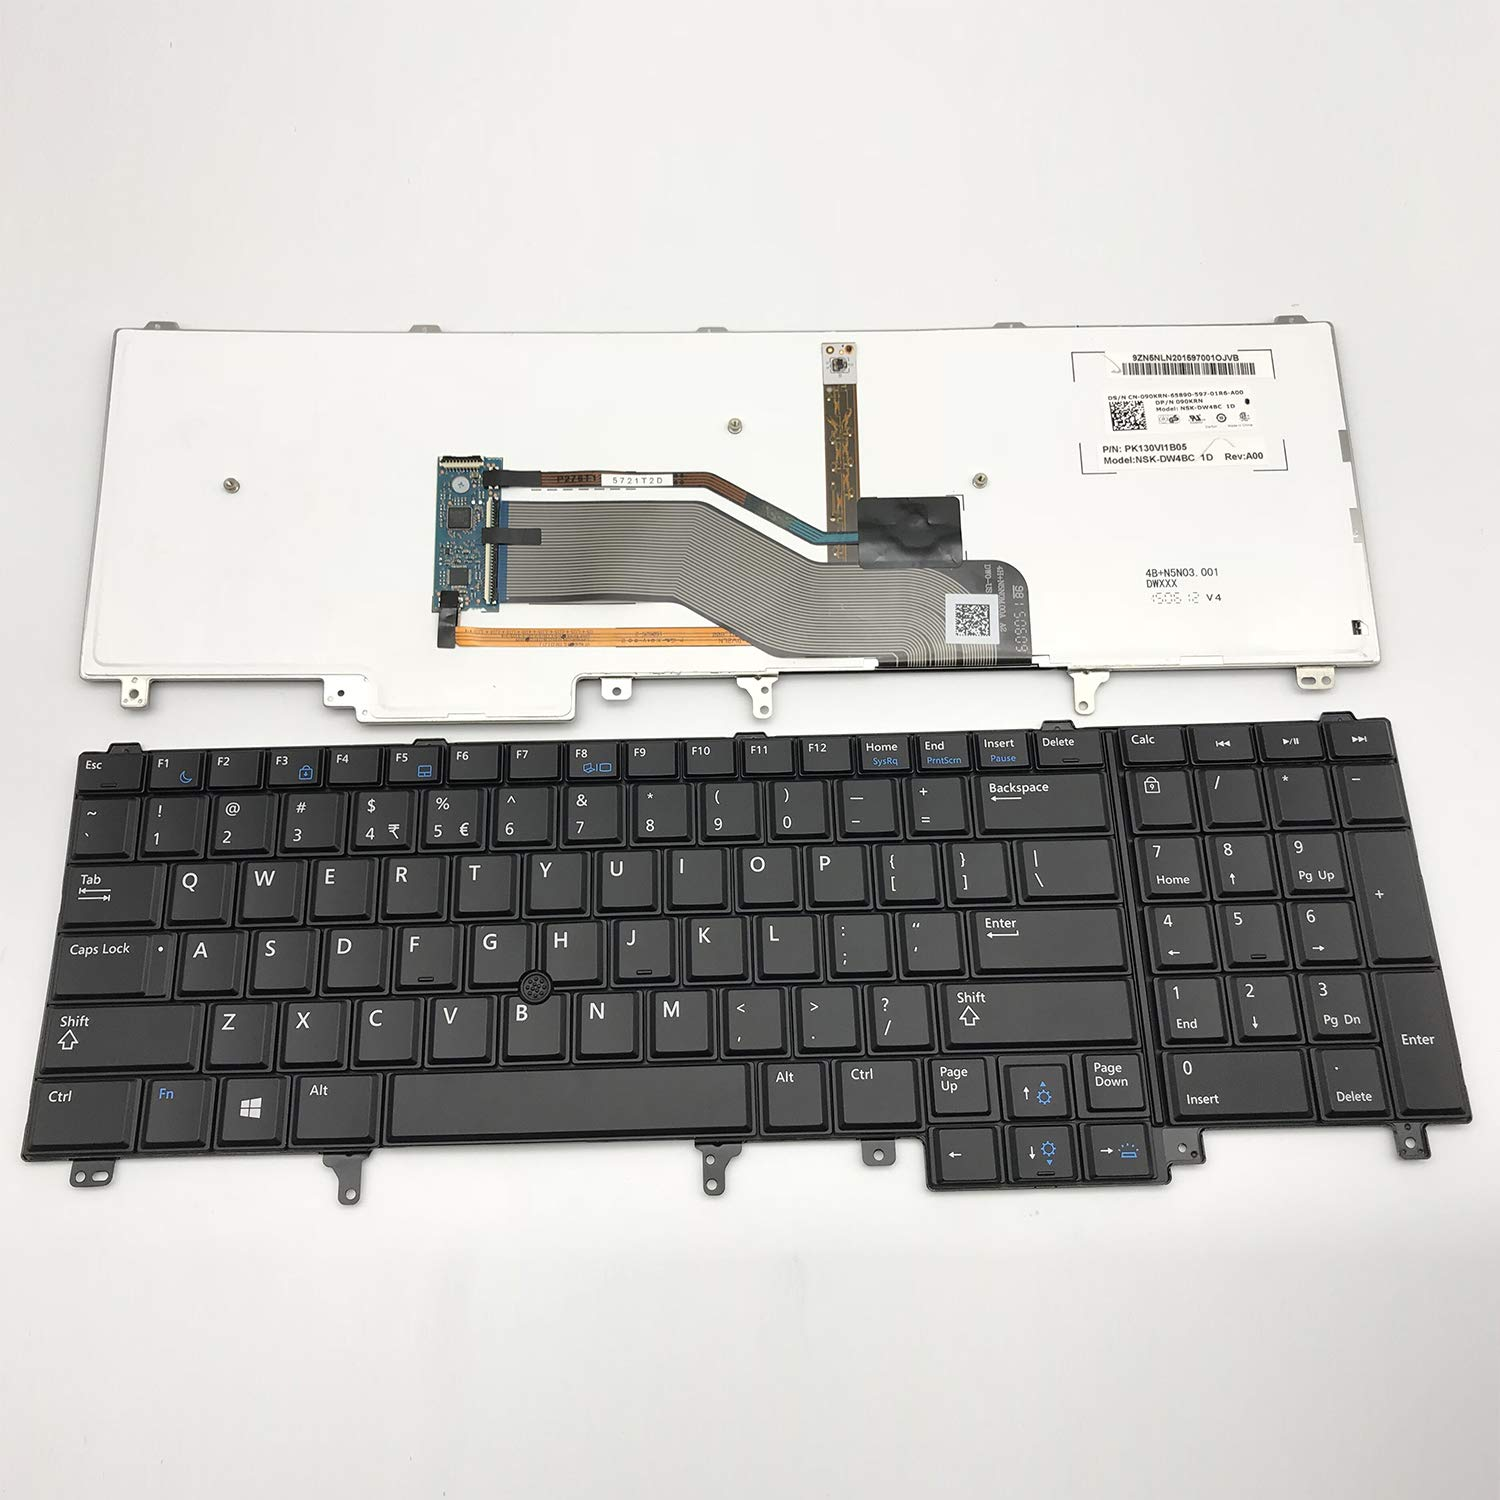 US Layout Notebook Keyboard for Dell Latitude E6520 E6530 E6540 E5520 E5530 series Black Backlight with pointing Small Enter Key